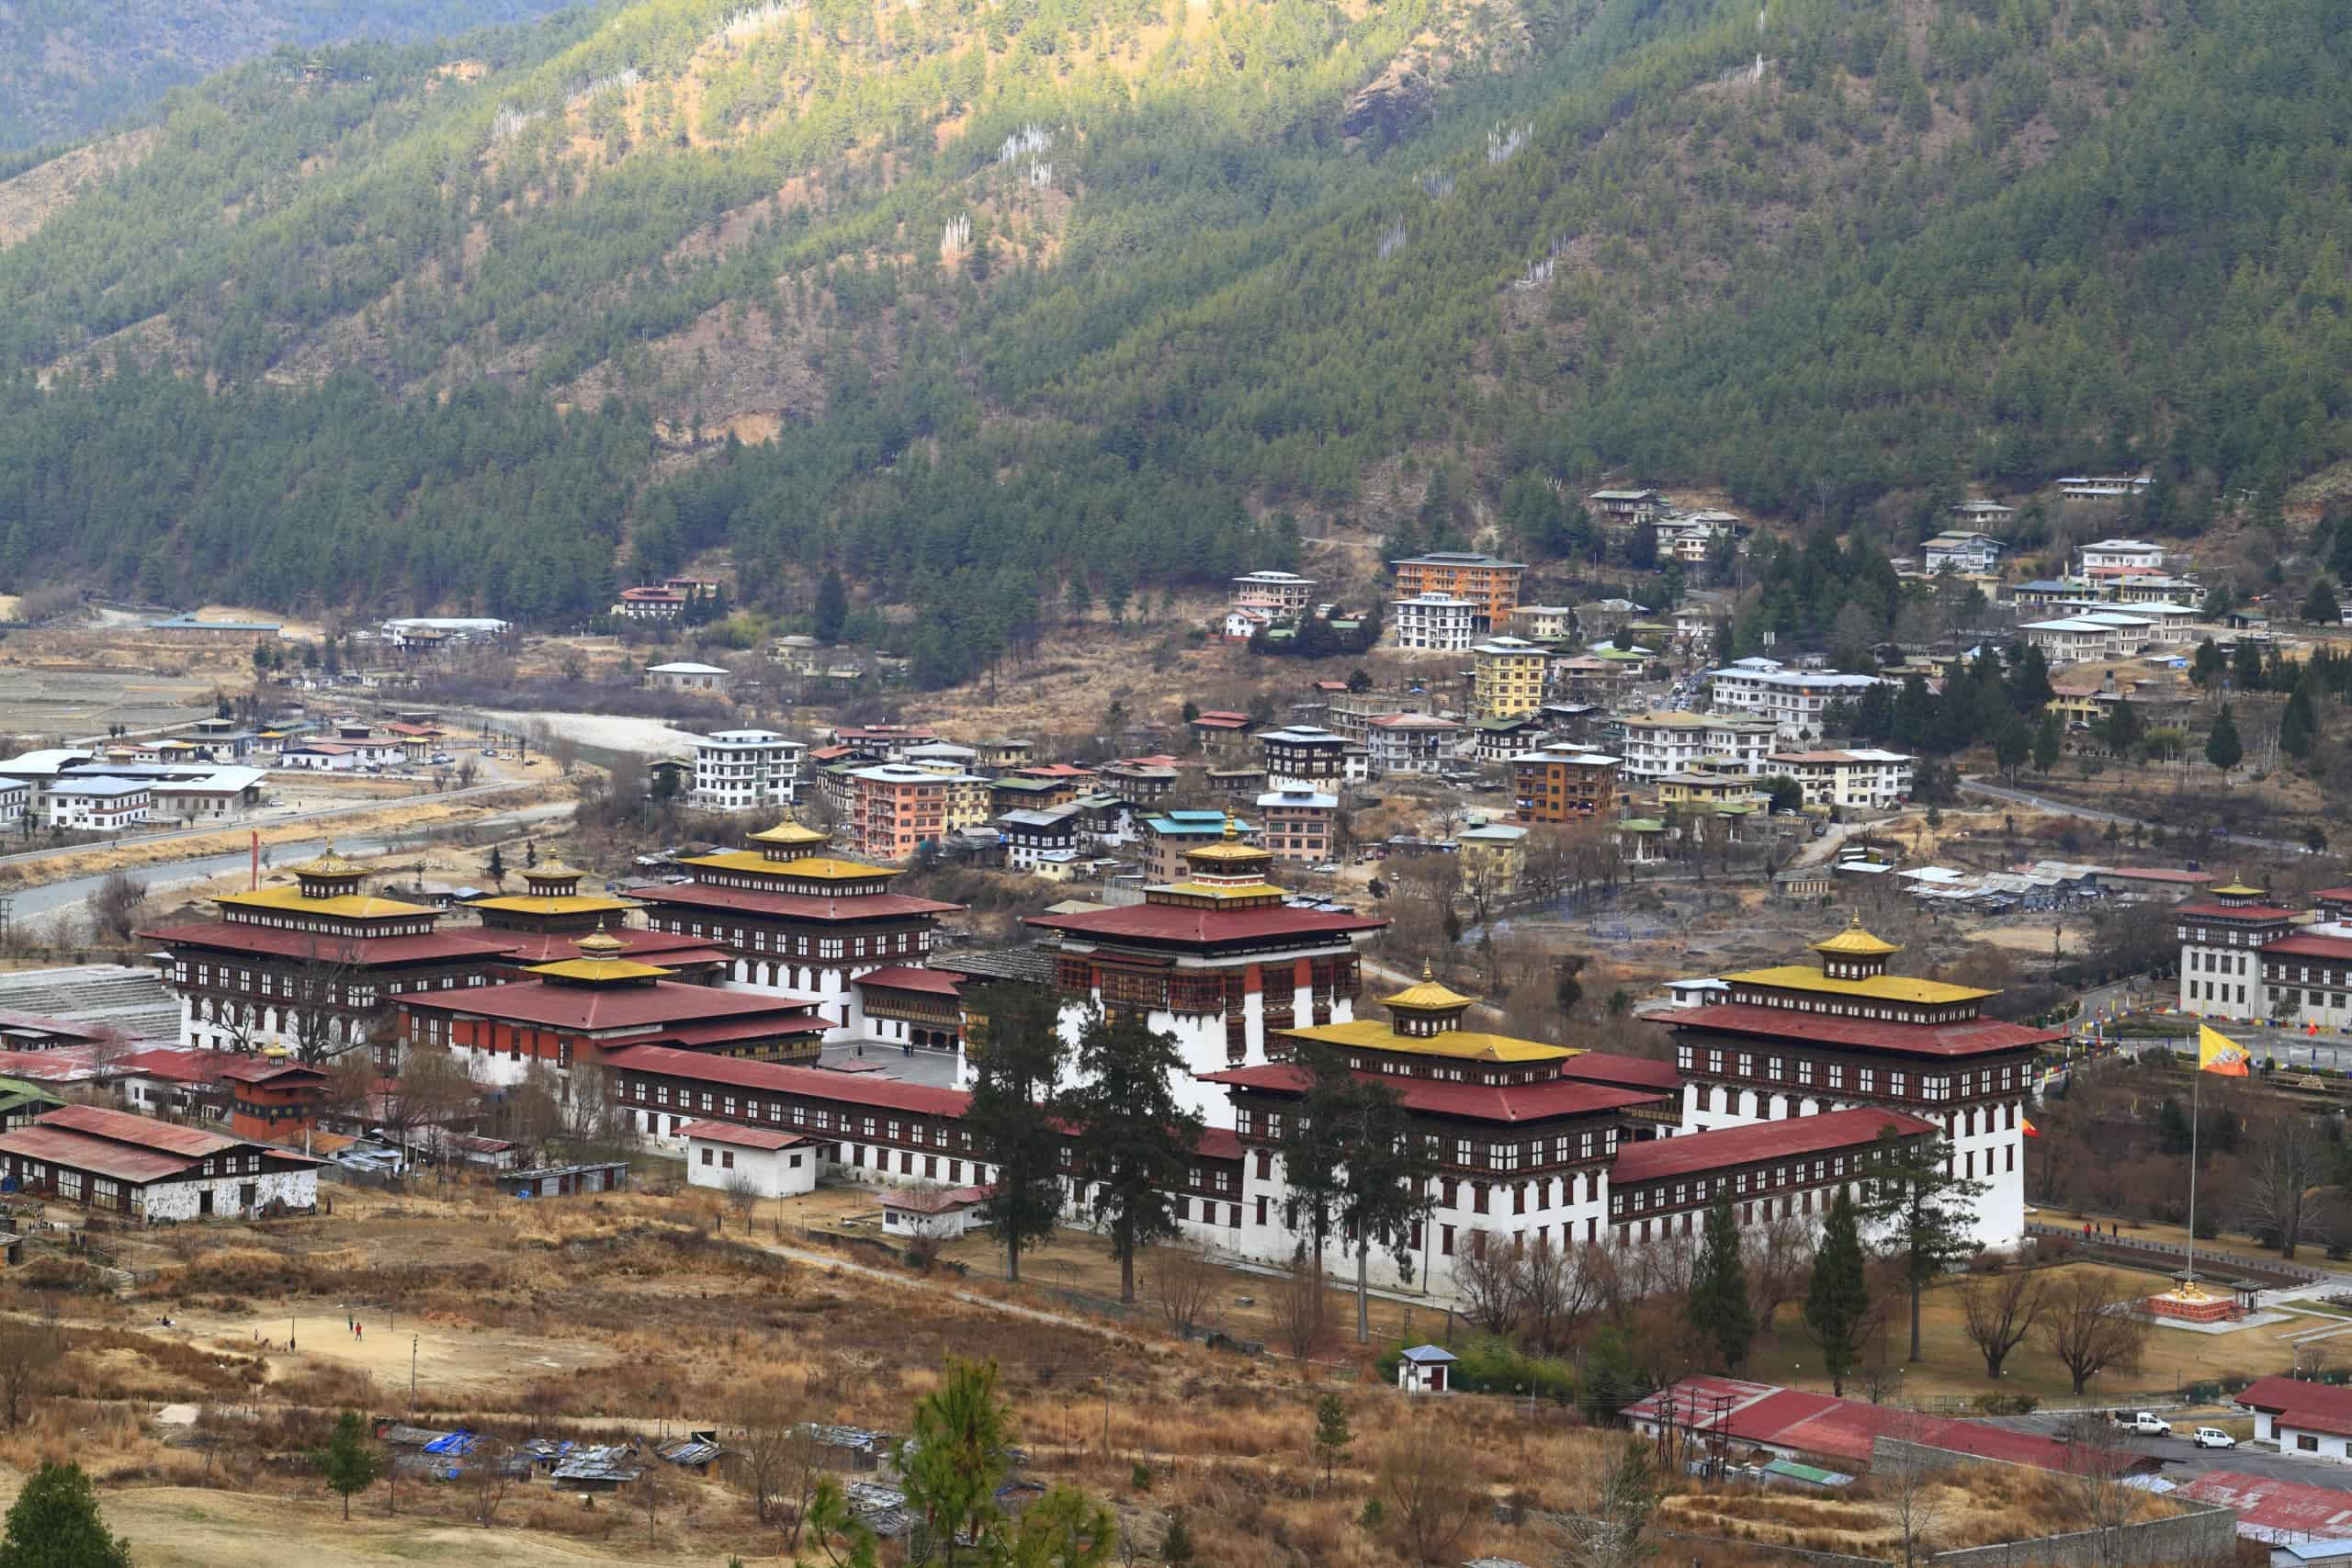 Tashichho Dzong is a Buddhist monastery and fortress on the northern edge of the city of Thimpu in Bhutan